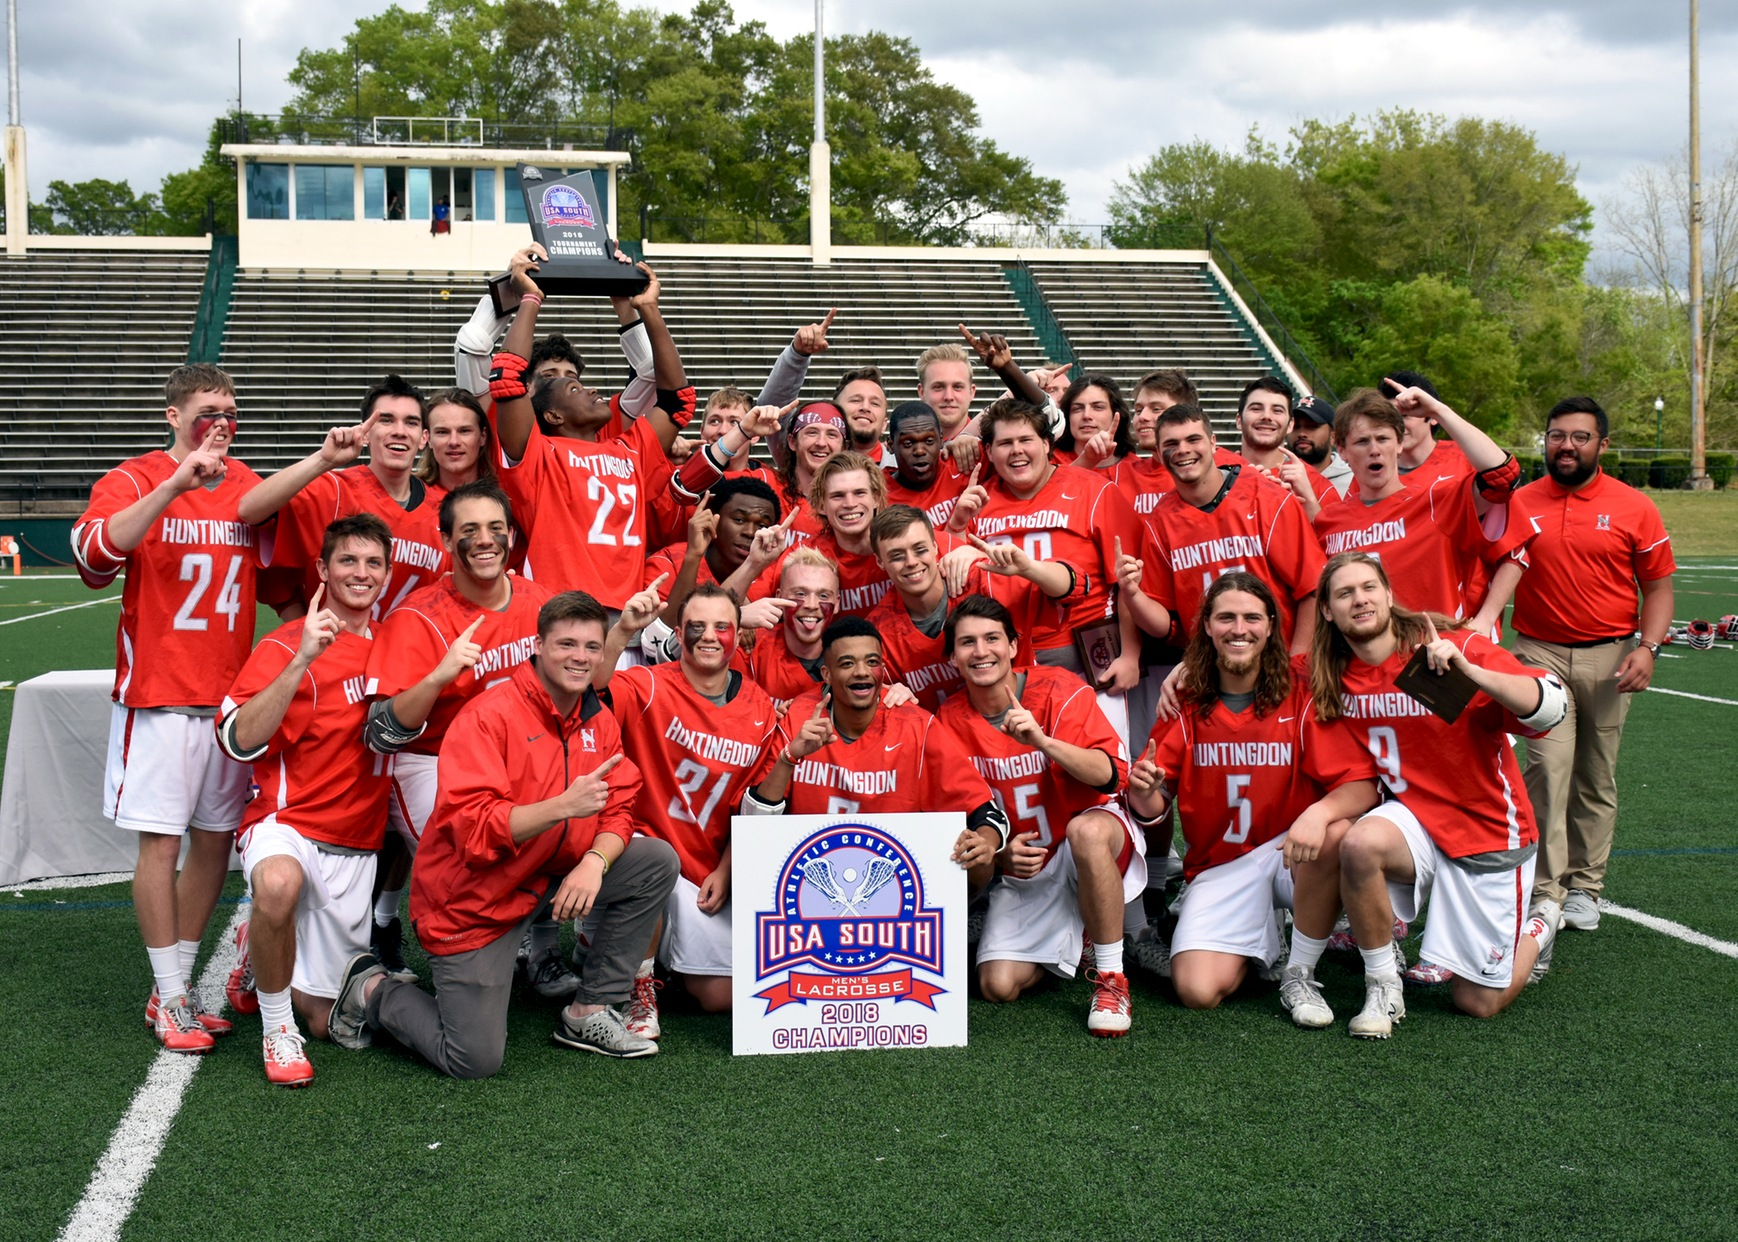 Huntingdon defeated Methodist 12-4 to win the inaugural USA South men's lacrosse conference championship. (Photo submitted)